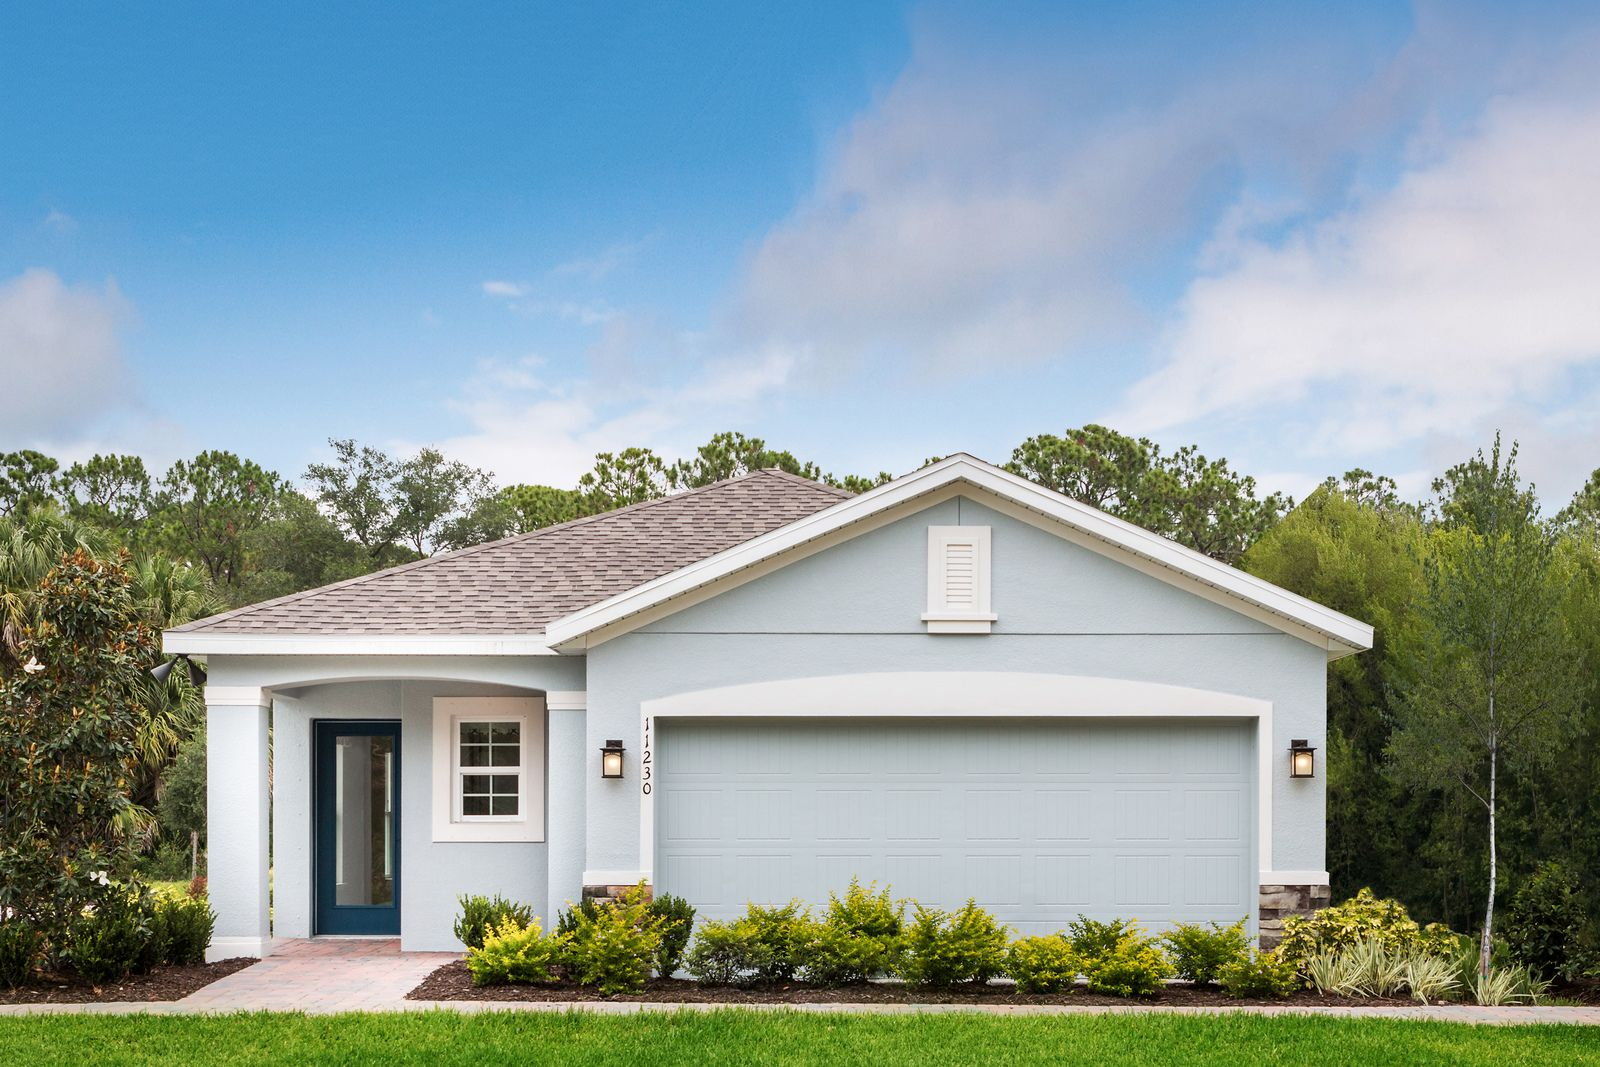 Summerwoods in Palmetto, FL, now available for showing by Anthony Santiago